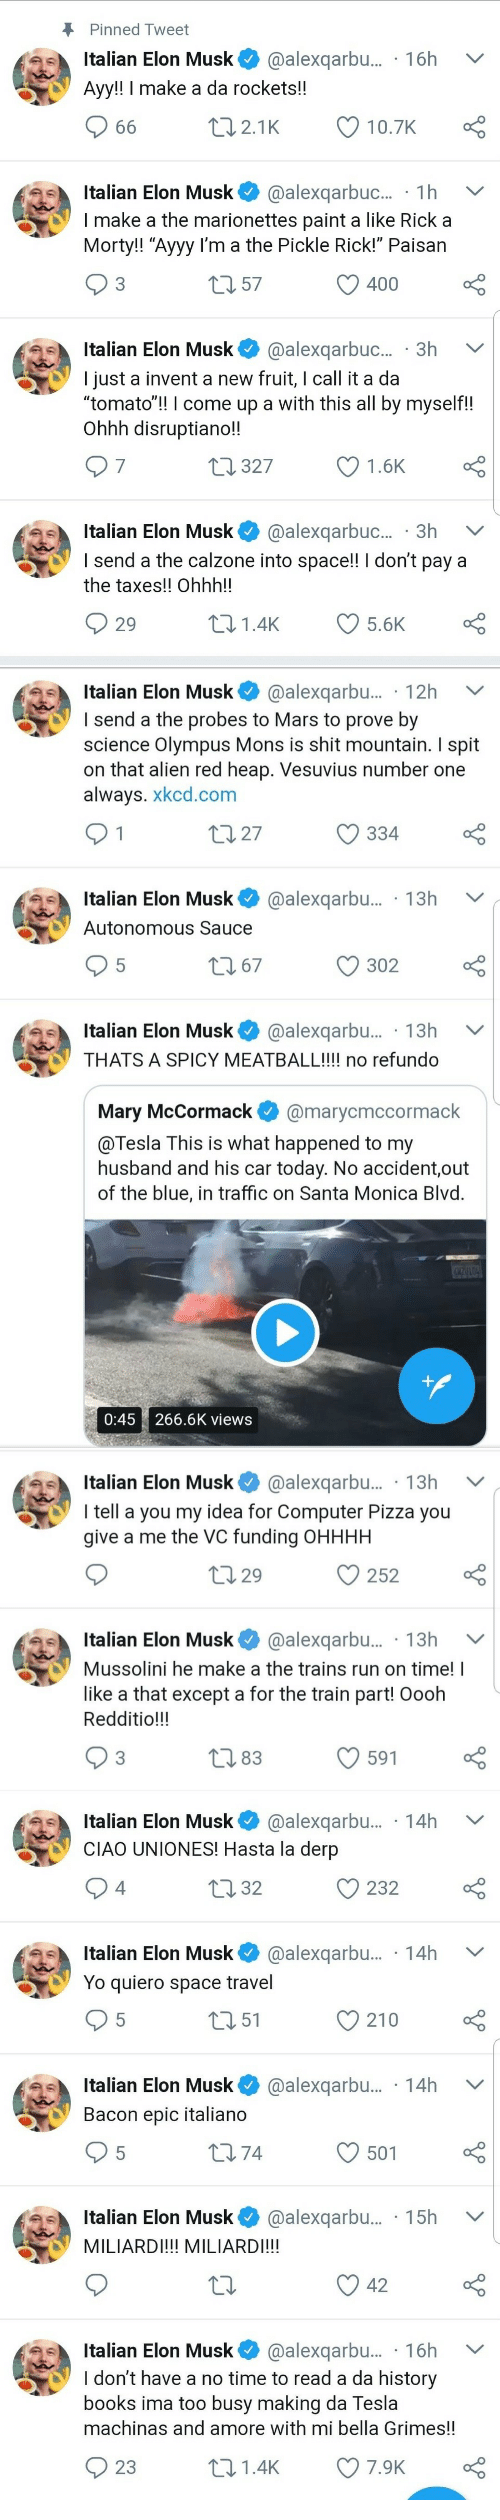 """Books, Pizza, and Run: Pinned Tweet  Italian Elon Musk @alexqarbu... 16h V  Ayy!! I make a da rockets!!  Italian Elon Musk@alexqarbuc... 1h  I make a the marionettes paint a like Rick a  Morty!! """"Ayyy I'm a the Pickle Rick!"""" Paisan  3  0 57  O 400  Italian Elon Musk@alexqarbuc... 3h  I just a invent a new fruit, I call it a da  tomato!! l come up a with this all by myself!!  Ohhh disruptiano!!  7  327  1.6K  Italian Elon Musk @alexqarbuc.. 3h V  I send a the calzone into space!! I don't pay a  the taxes!! Ohhh!!  29  01.4K 5.6K   Italian Elon Musk@alexqarbu... 12h  send a the probes to Mars to prove by  science Olympus Mons is shit mountain. I spit  on that alien red heap. Vesuvius number one  always. xkcd.com  t0 27  334  Italian Elon Musk@alexqarbu... 13h V  Autonomous Sauce  302  Italian Elon Musk* @alexqarbu.. . 13h  THATS A SPICY MEATBALL!!!! no refundo  Mary McCormack@marycmccormack  @Tesla This is what happened to my  husband and his car today. No accident,out  of the blue, in traffic on Santa Monica Blvd  0:45 266.6K views   Italian Elon Musk@alexqarbu... . 13h  I tell a you my idea for Computer Pizza you  give a me the VC funding OHHHH  0 29  С 252  Italian Elon Musk @alexqarbu... . 13h V  Mussolini he make a the trains run on time! I  like a that except a for the train part! Oooh  Redditio!!!  83  591   Italian Elon Musk@alexqarbu... 14h  CIAO UNIONES! Hasta la derp  4  0 32  232  Italian Elon Musk@alexqarbu... 14h  Yo quiero space travel  5  151  210  Italian Elon Musk@alexqarbu.... 14h  Bacon epic italiano  5  174  501  Italian Elon Musk@alexqarbu.... 15h  MILIARDI!!! MILIARDI!!!  Italian Elon Musk@alexqarbu... 16h V  ldon't have a no time to read a da history  books ima too busy making da lesla  machinas and amore with mi bella Grimes!!  23  t01.4K 7.9K"""